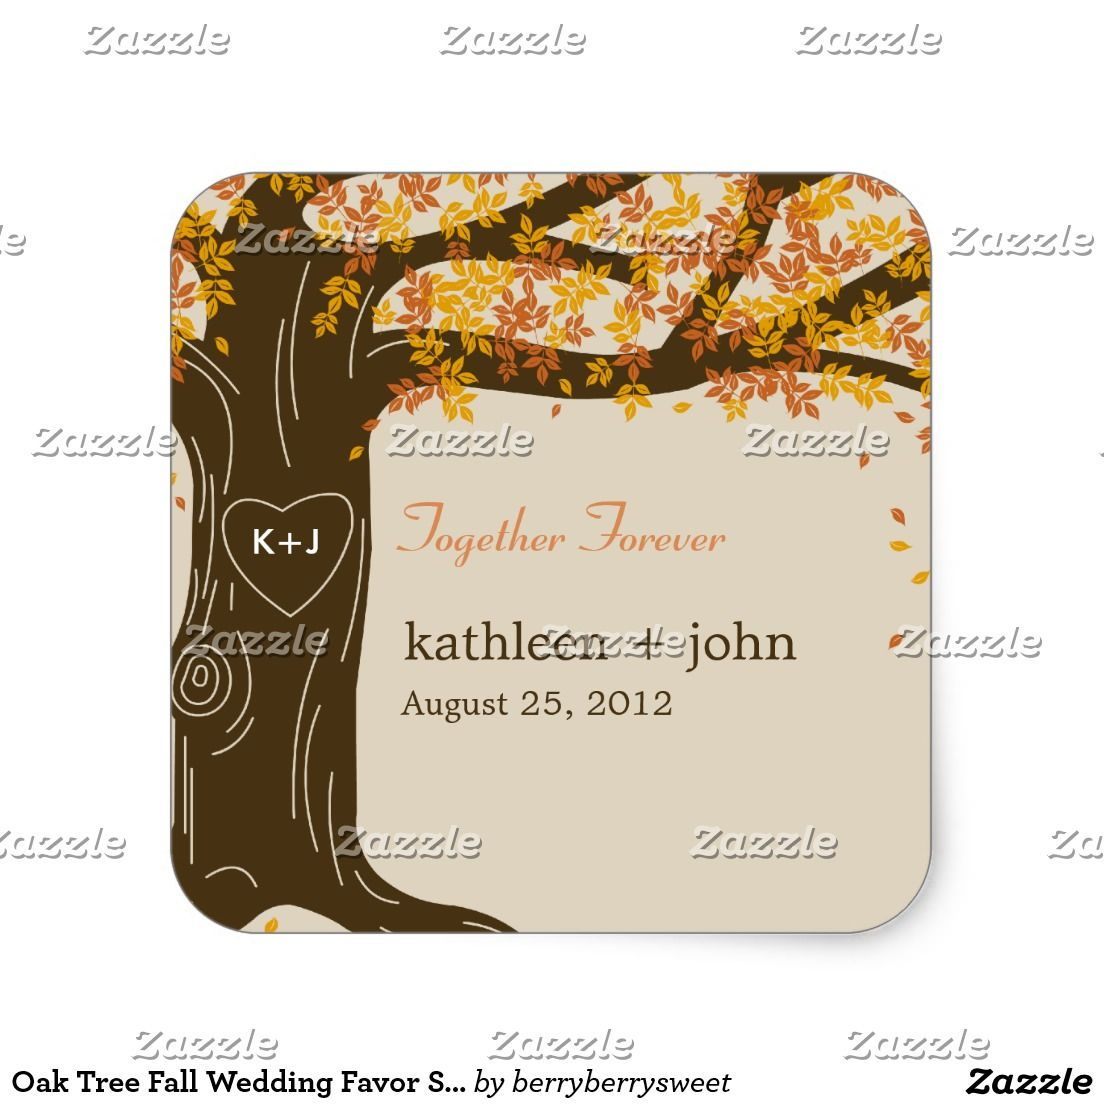 Oak Tree Fall Wedding Favor Sticker | wedding favor stickers ...